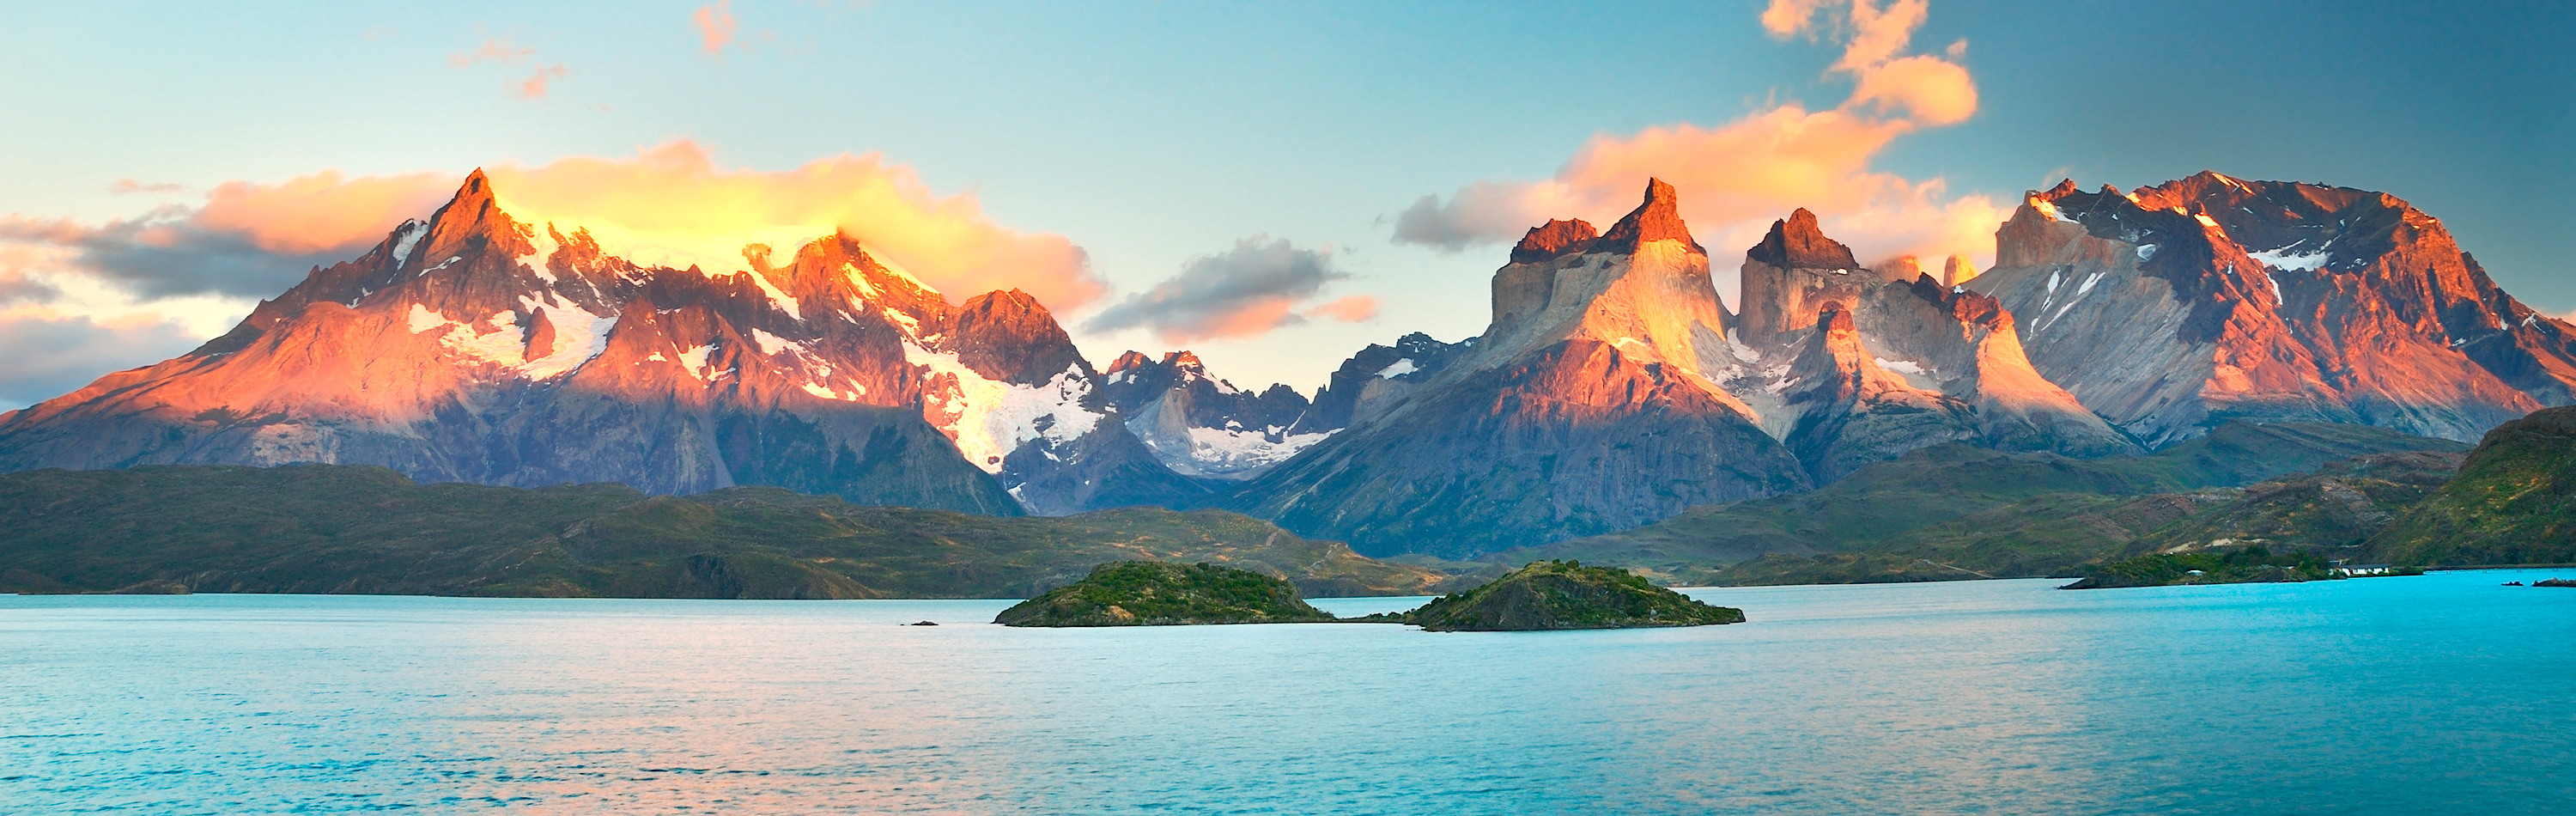 Patagonia Tours - Mountain views in Argentina